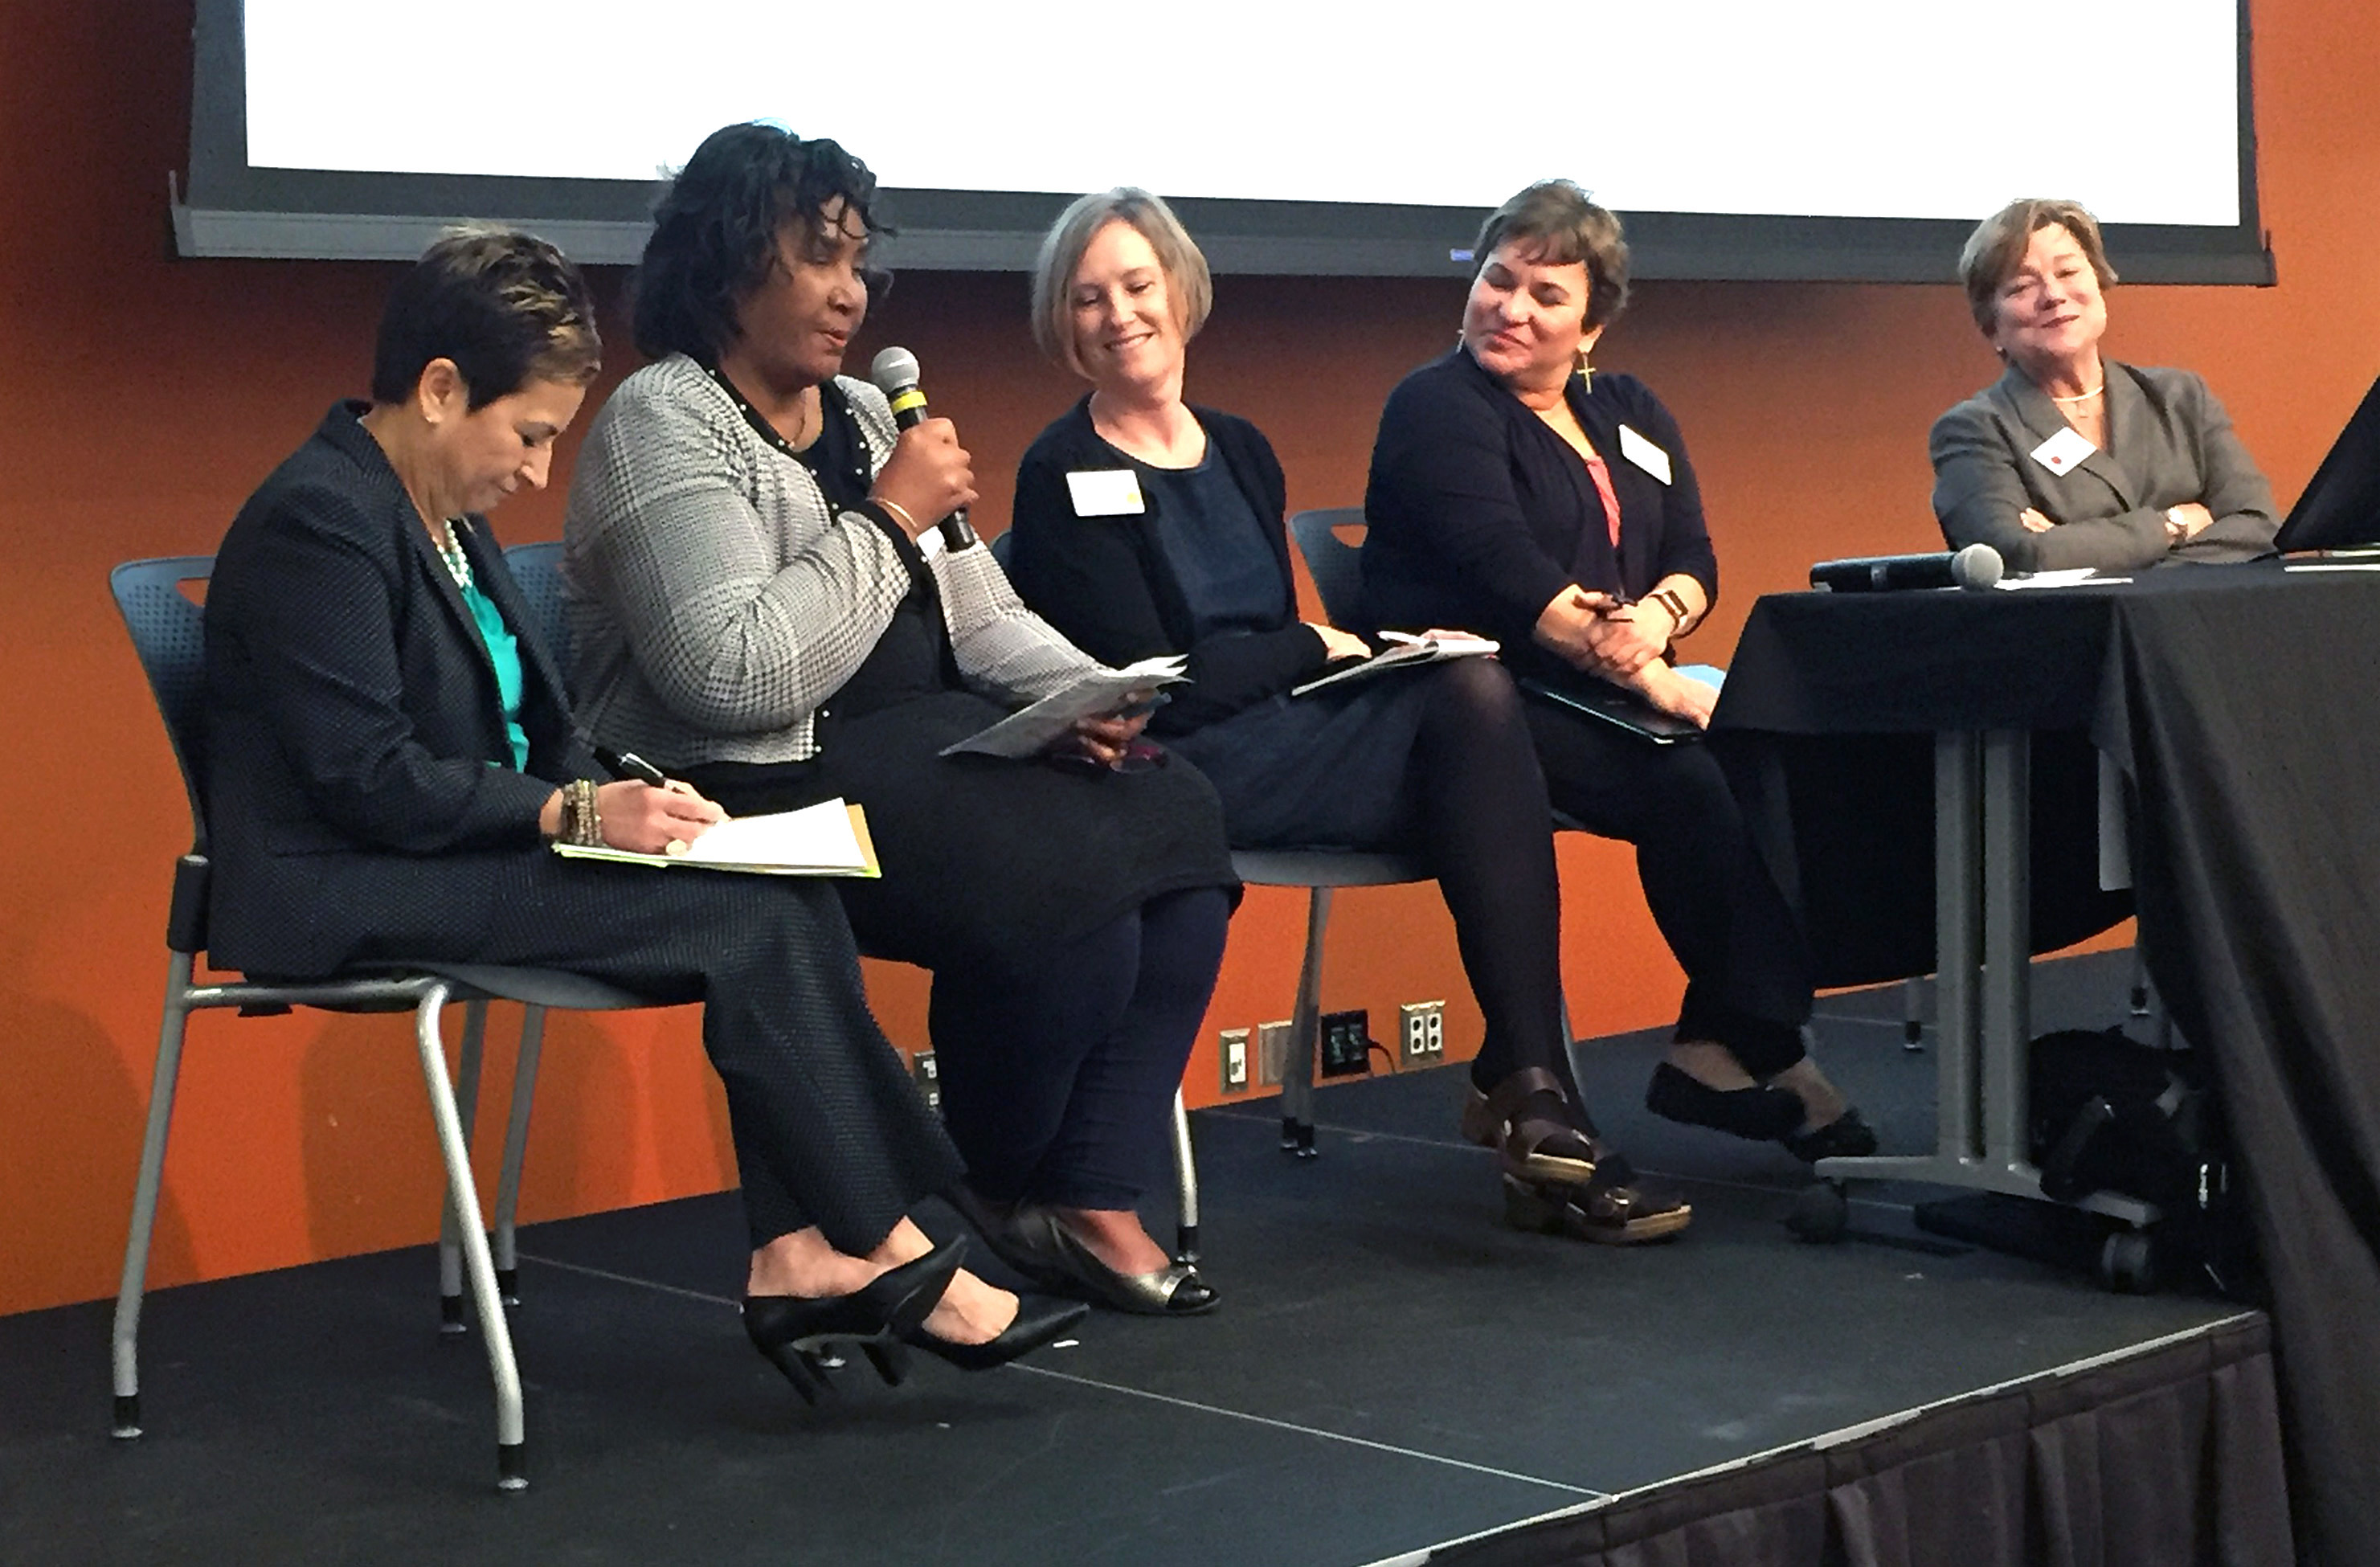 Panelists at the Nov. 2 Connectional Table meeting speak about the impact a divided church would have on fulfilling the church's mission. Pictured from left are Bishop Cynthia Fierro Harvey, Benedita Penicela Nhambiu, the Revs. Beverly Jones, Lyssette N. Perez and Kim Cape. Photo by Heather Hahn, UMNS.